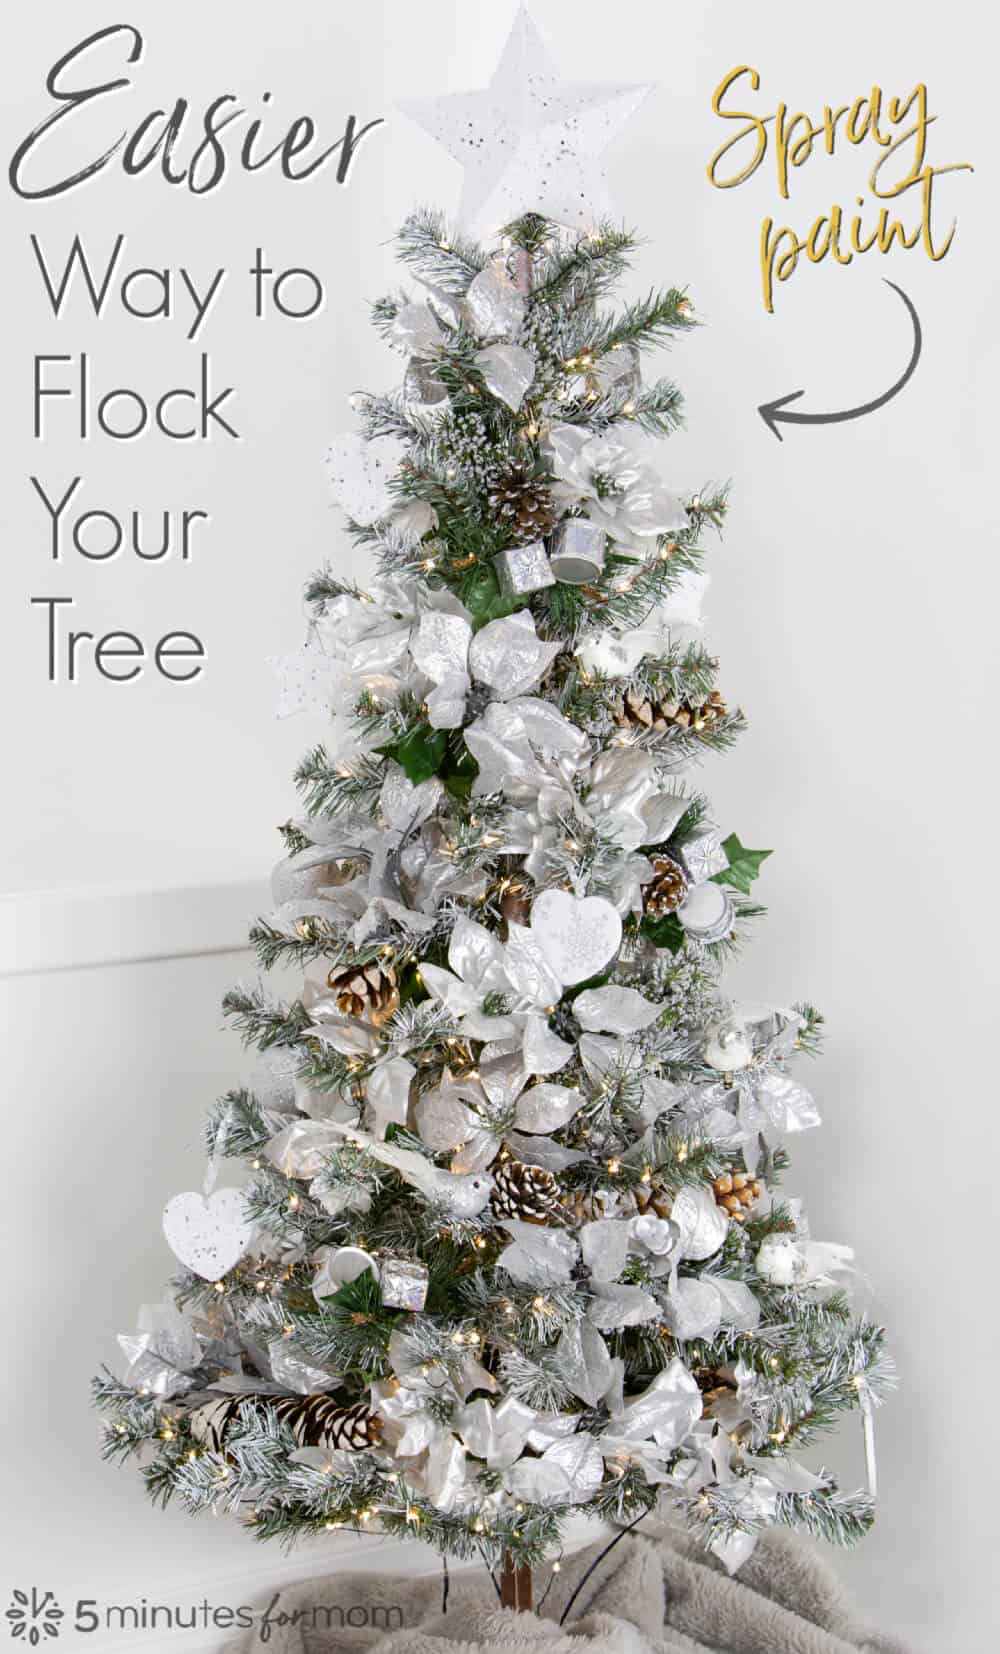 Easier Way to Flock A Christmas Tree Using Spray Paint